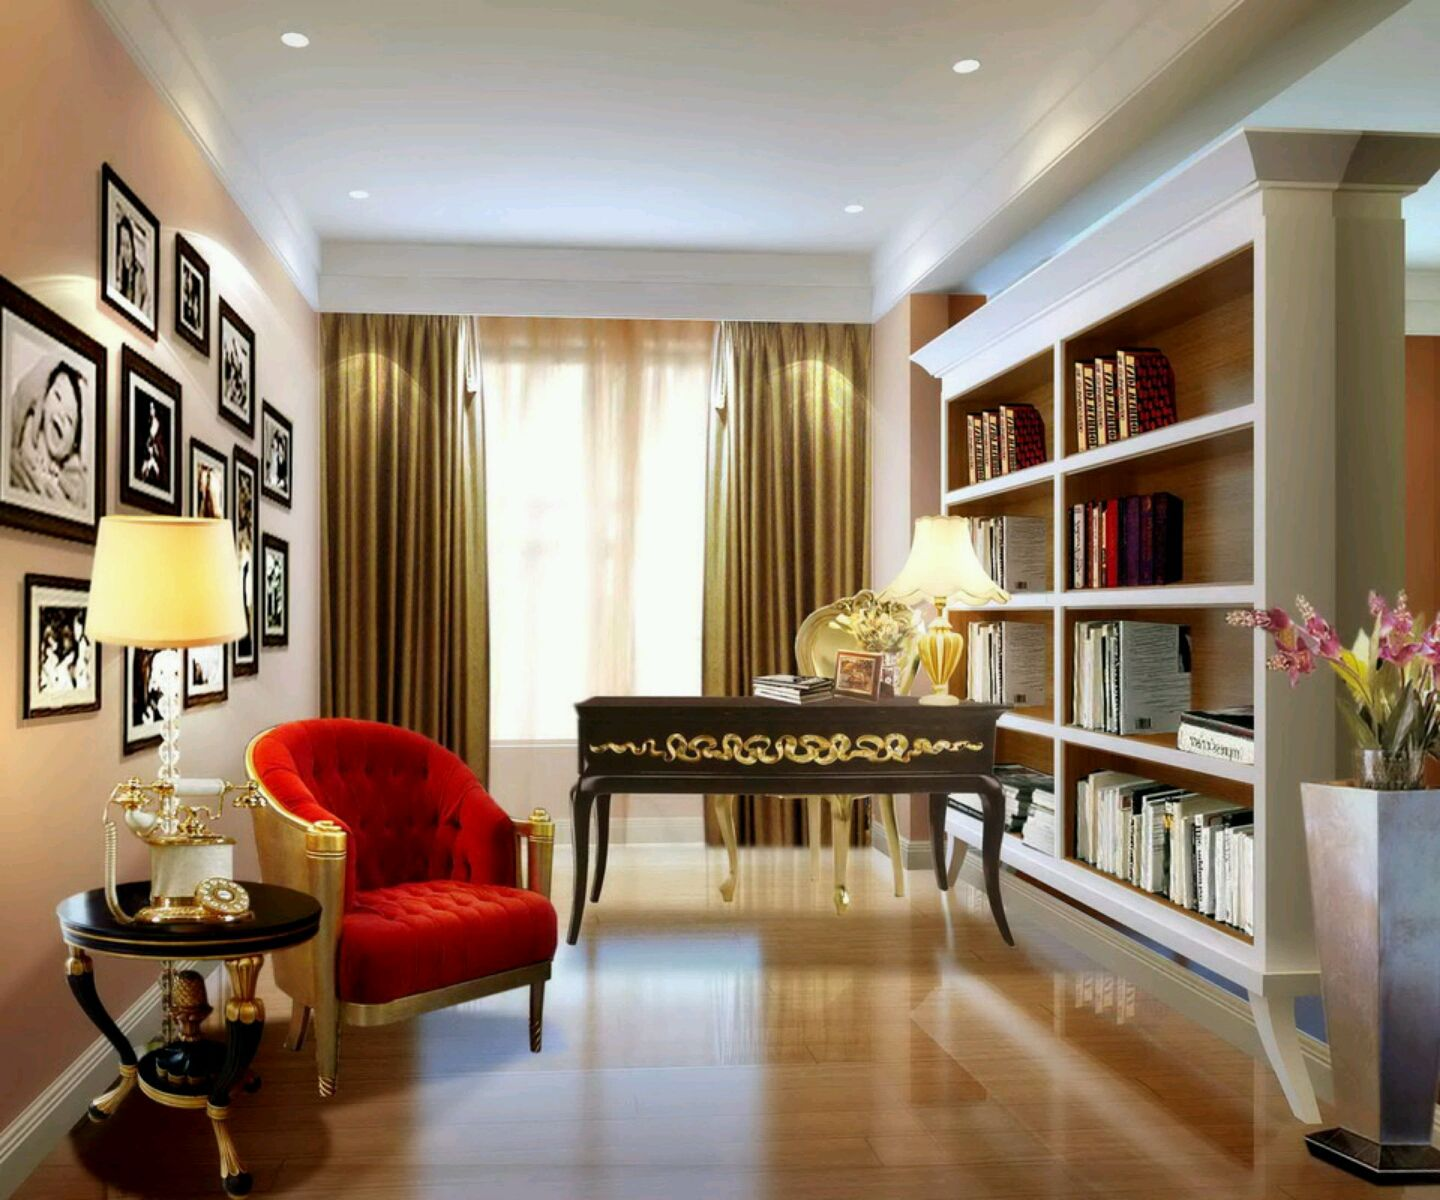 Homework Spaces And Study Room Ideas You Ll Love Furniture